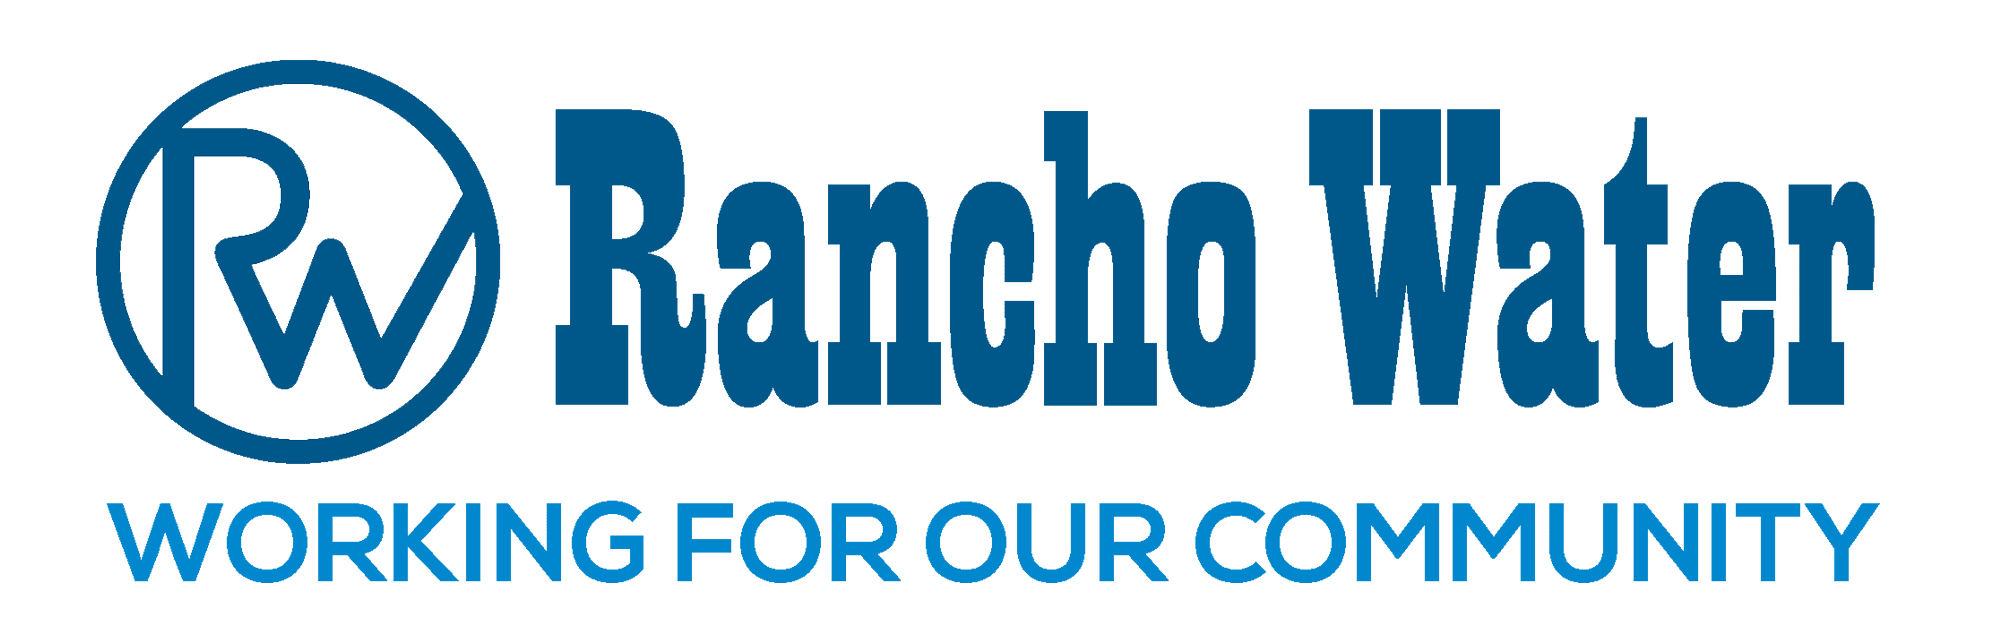 Rancho Water Logo with the Tagline: Working for our community